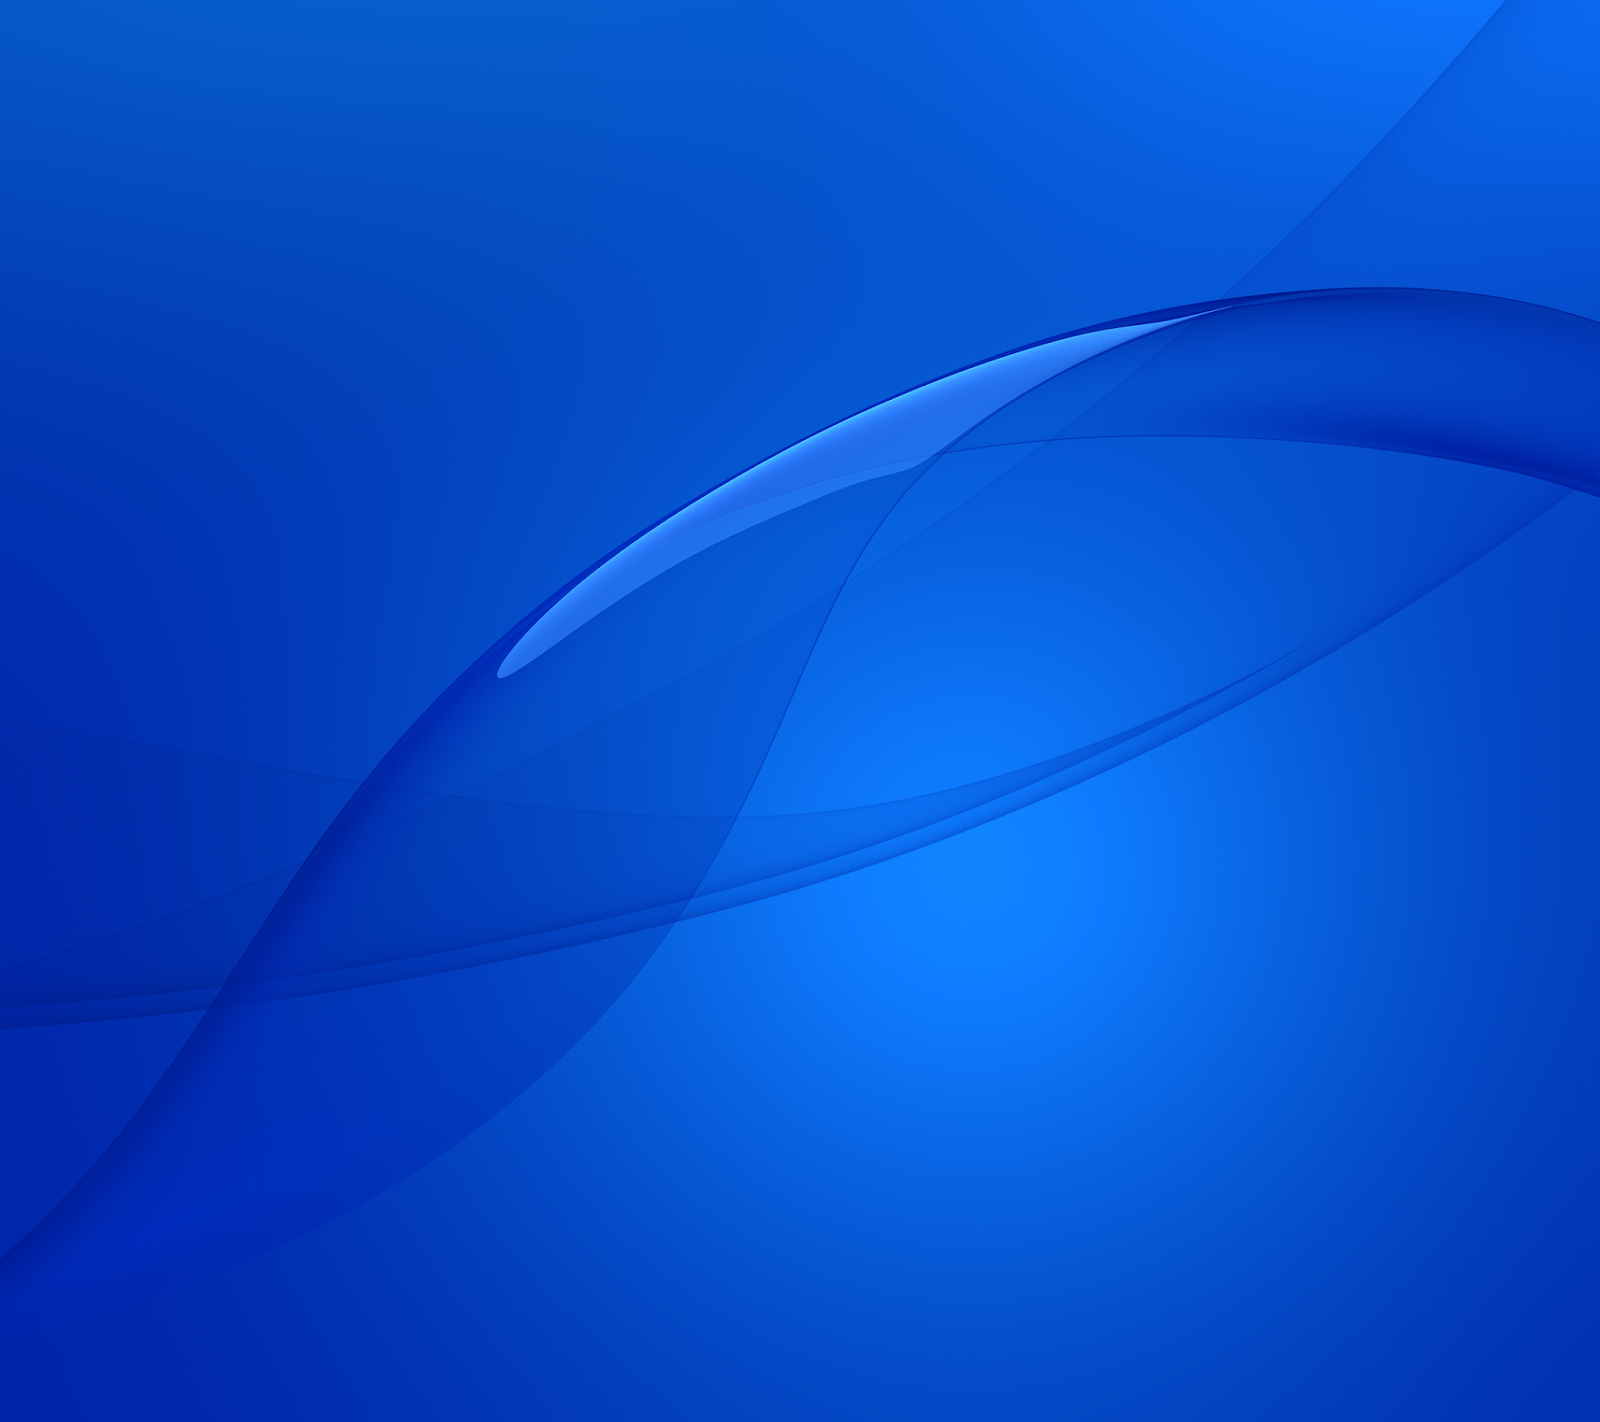 Xperia Z3 Wallpaper oficial 7